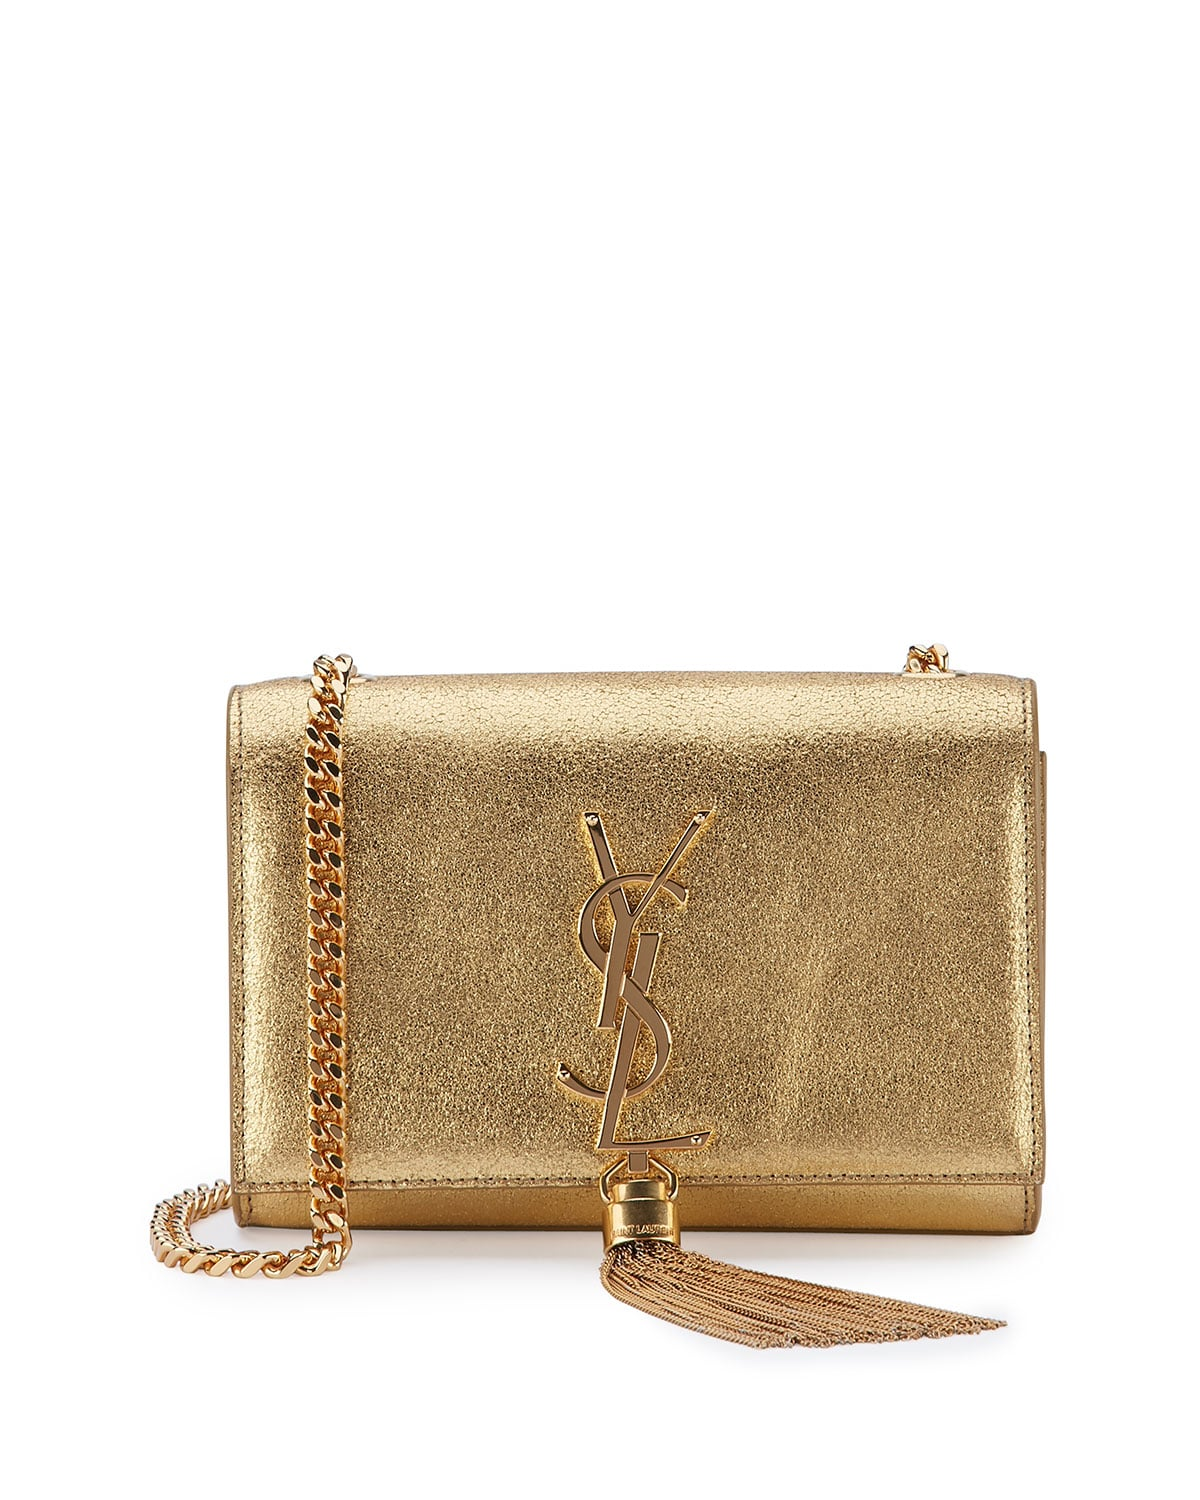 Saint Laurent Pre Fall 2016 Bag Collection Spotted Fashion